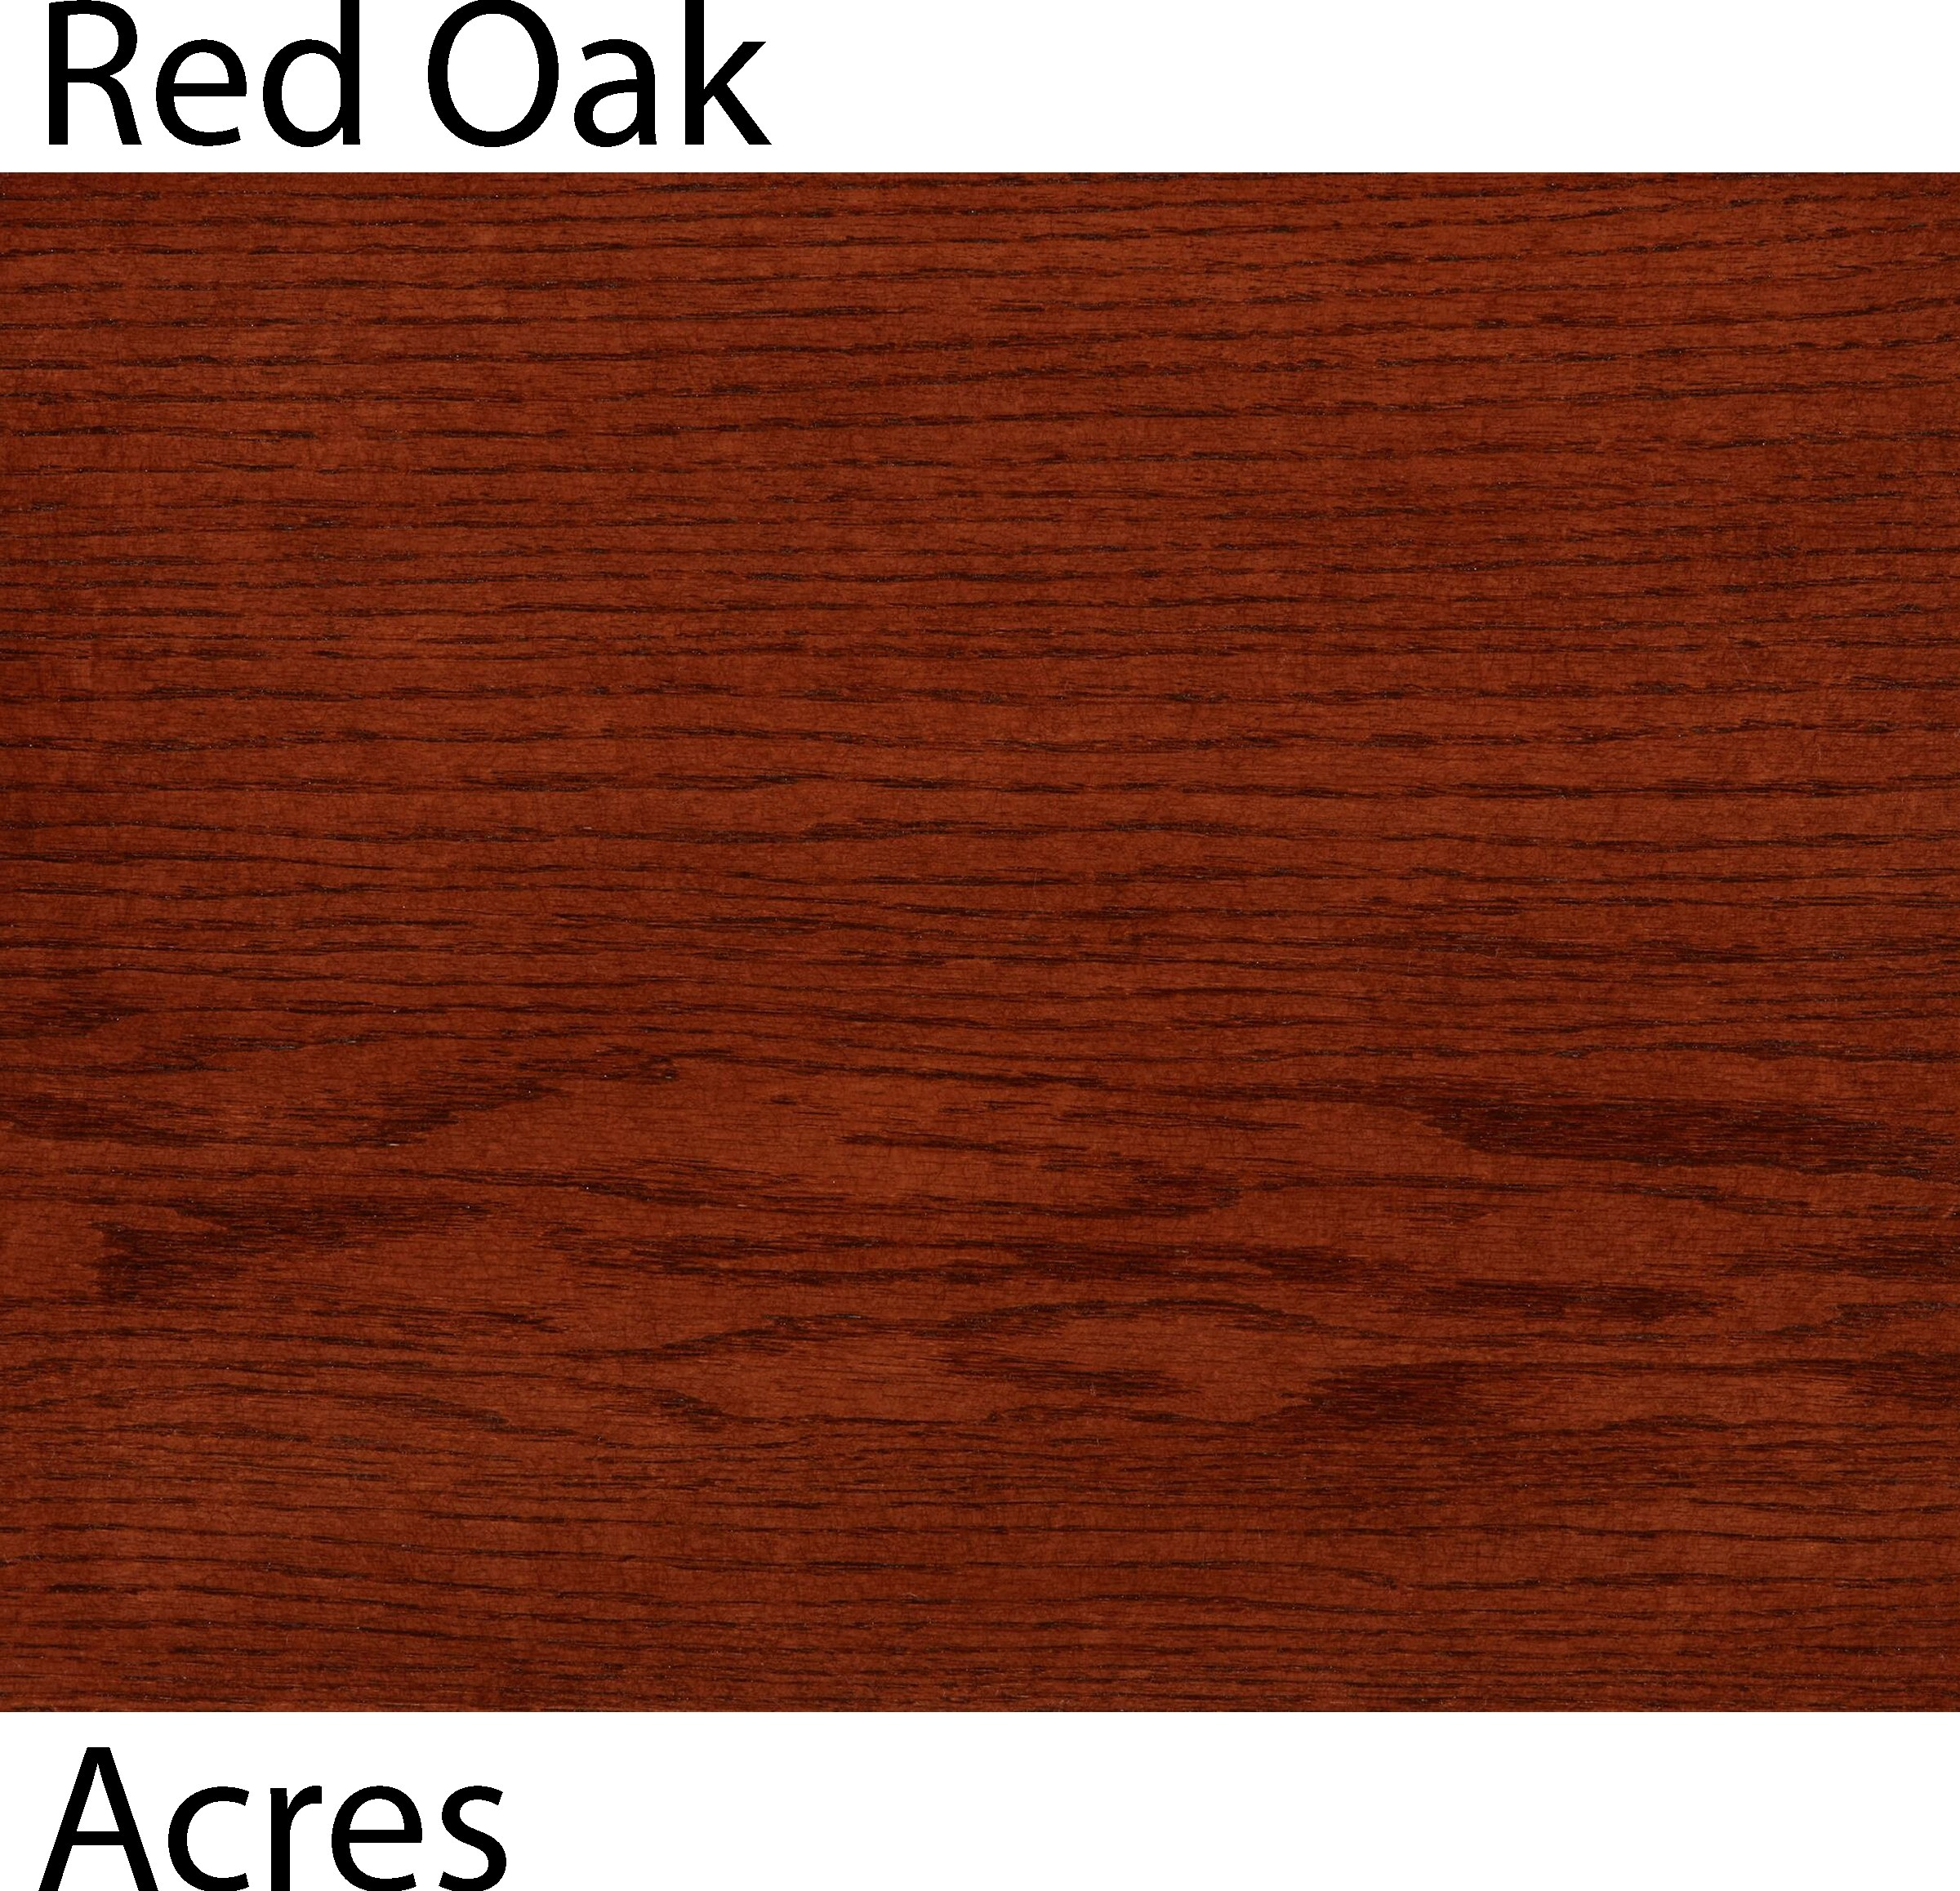 Red Oak Wood Stairsupplies™   Red Oak Stair Railing   Inside   2 Tone   Beautiful   Color   Two Toned